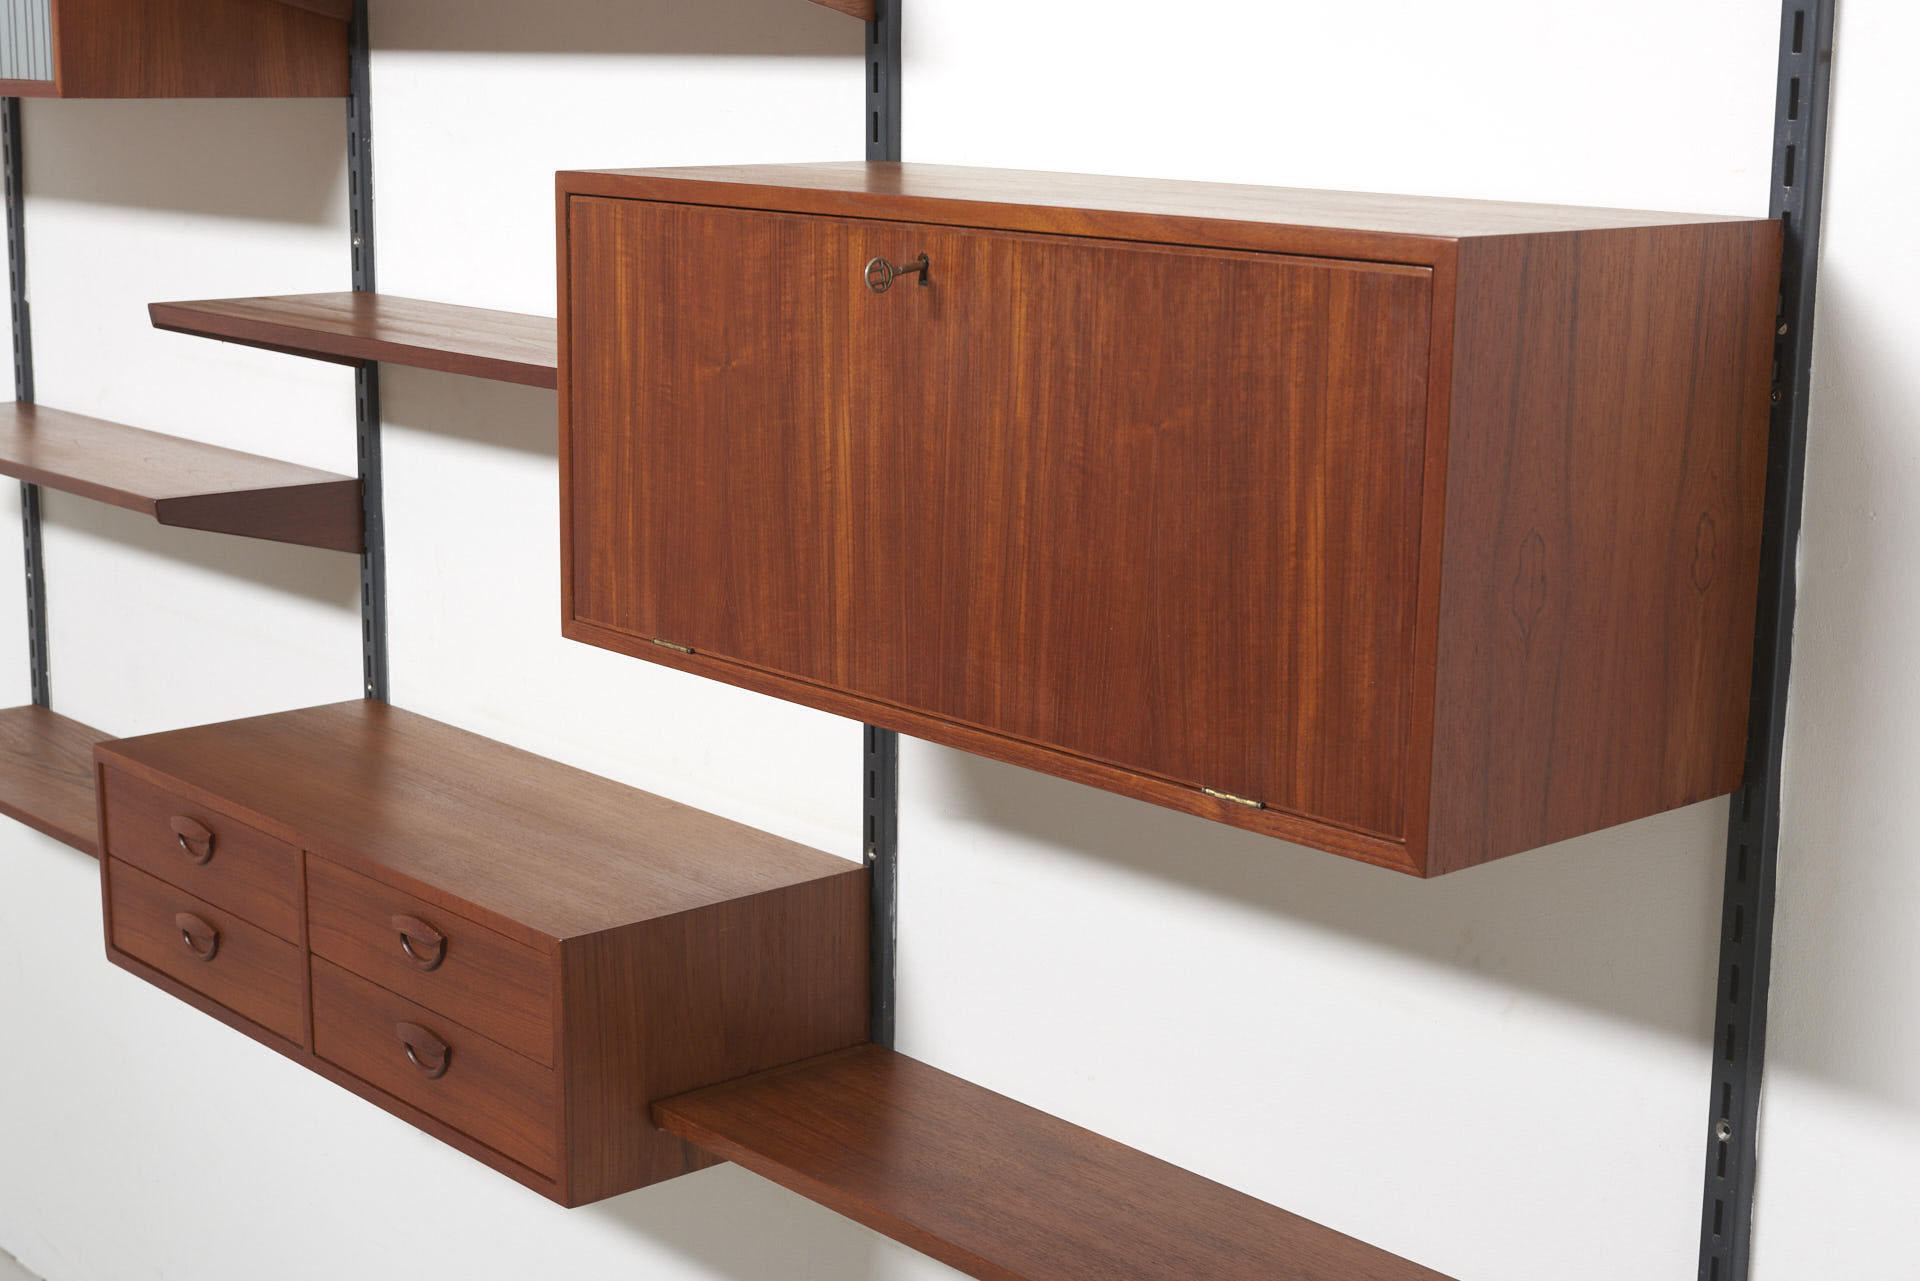 modestfurniture-vintage-1440-wall-unit-set2-kai-kristiansen-fm-teak09